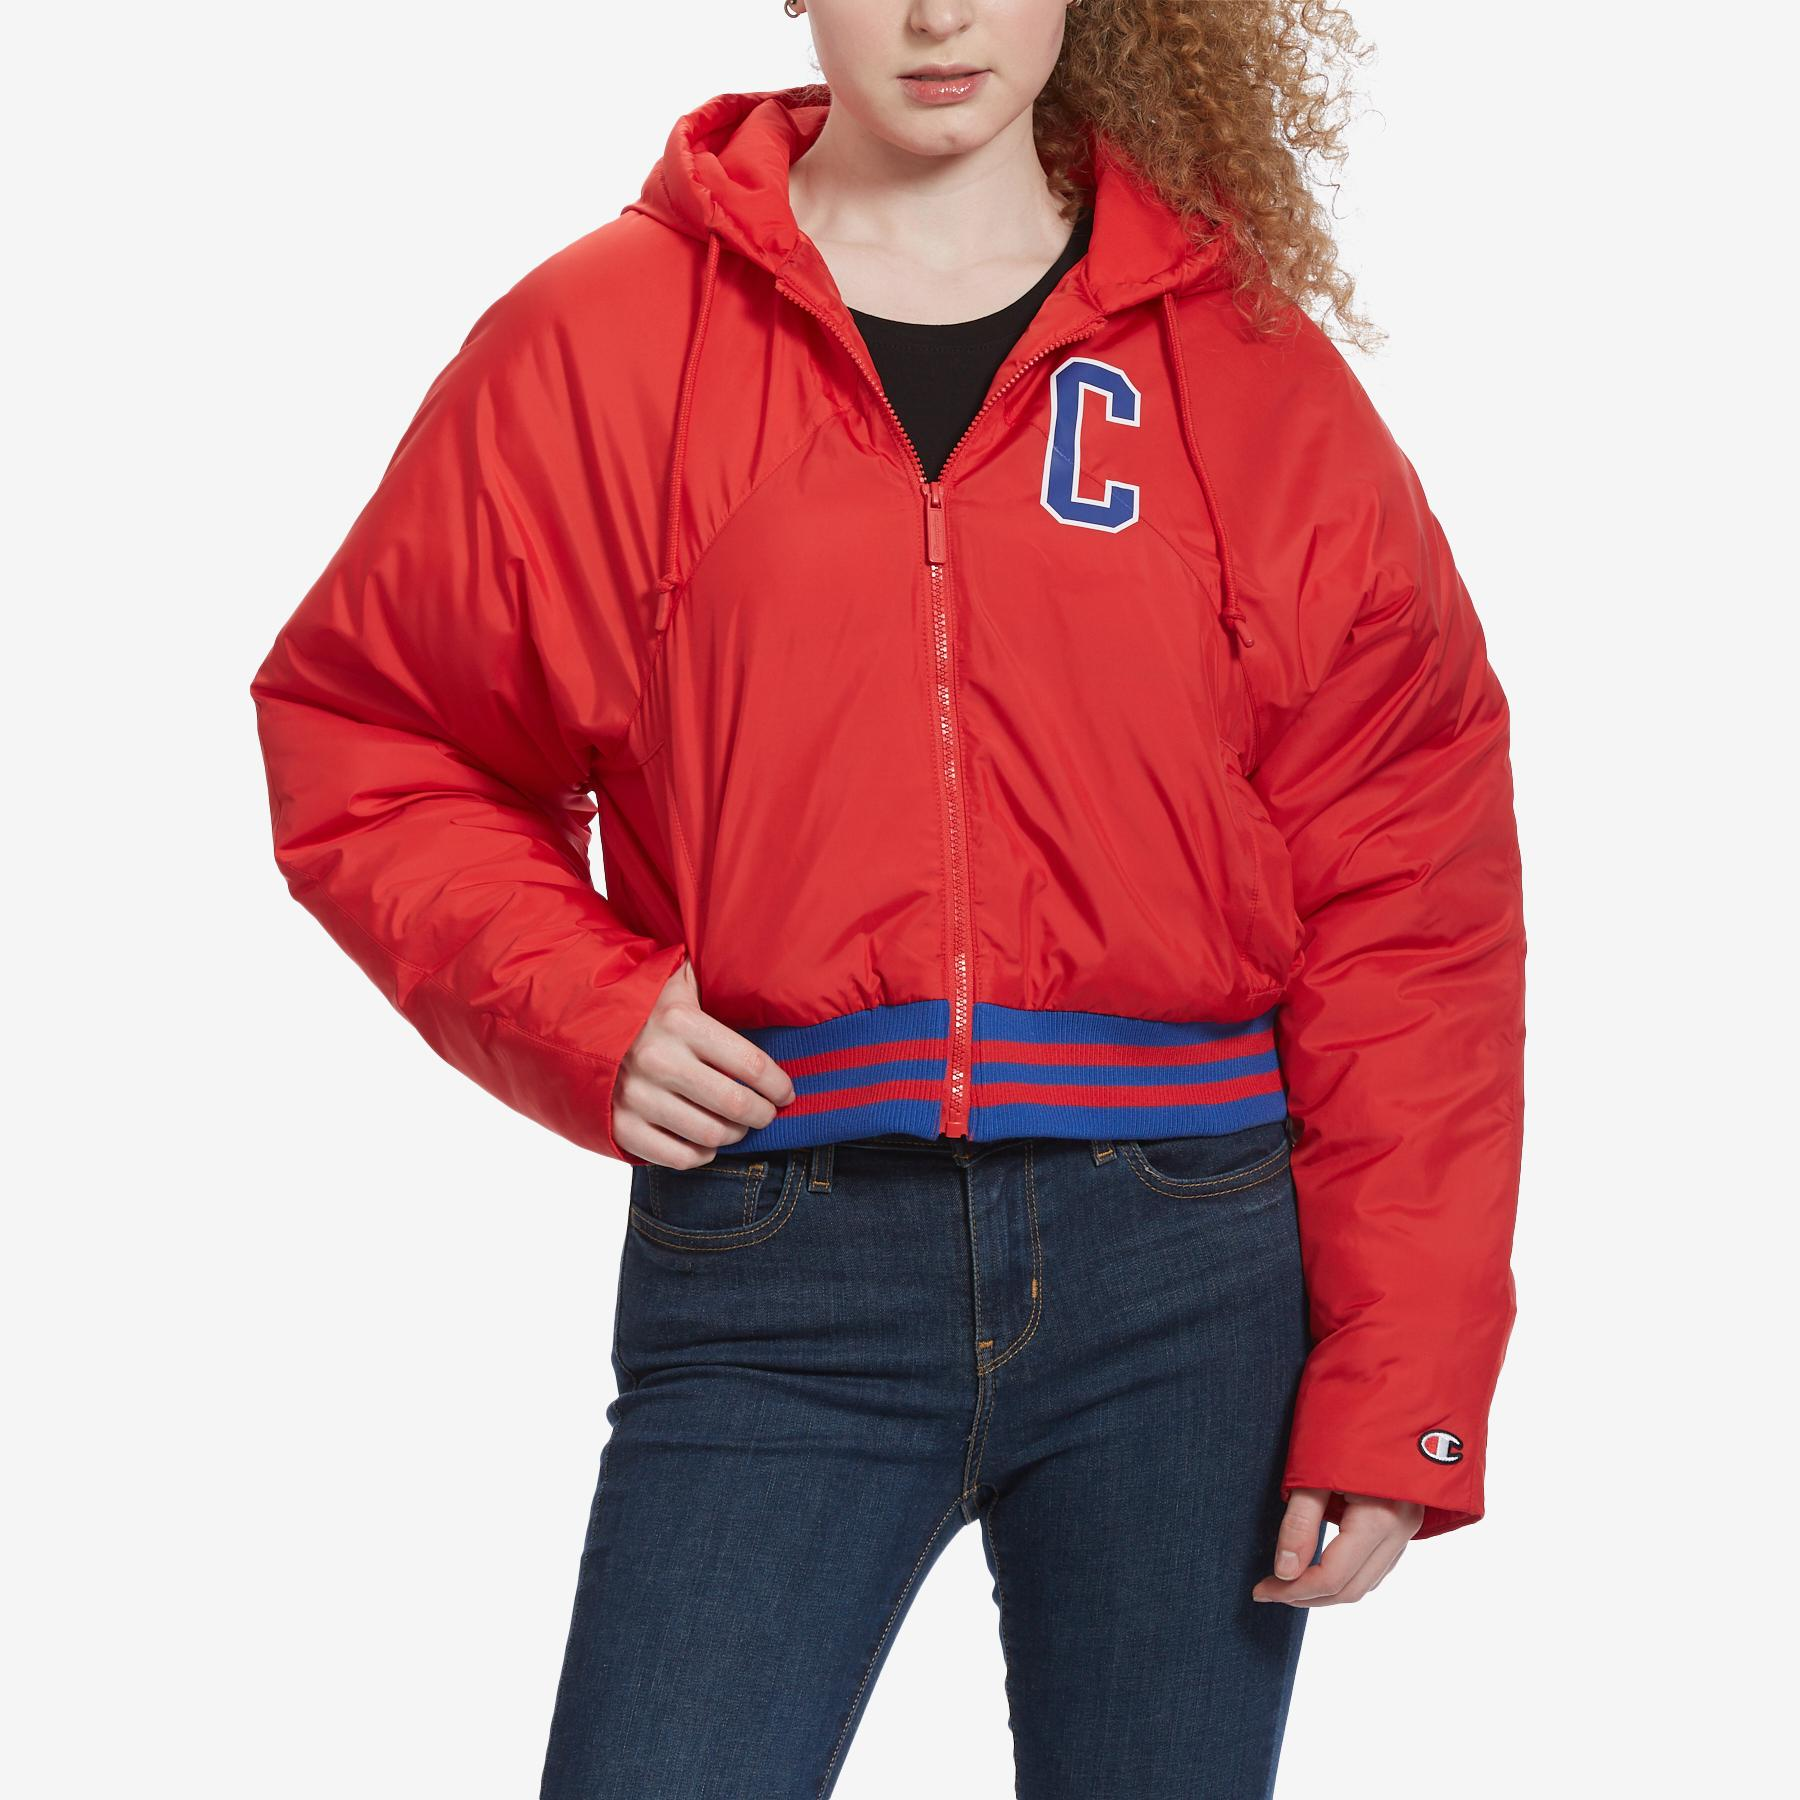 Women's Life Filled Fashion Jacket With Block Logo